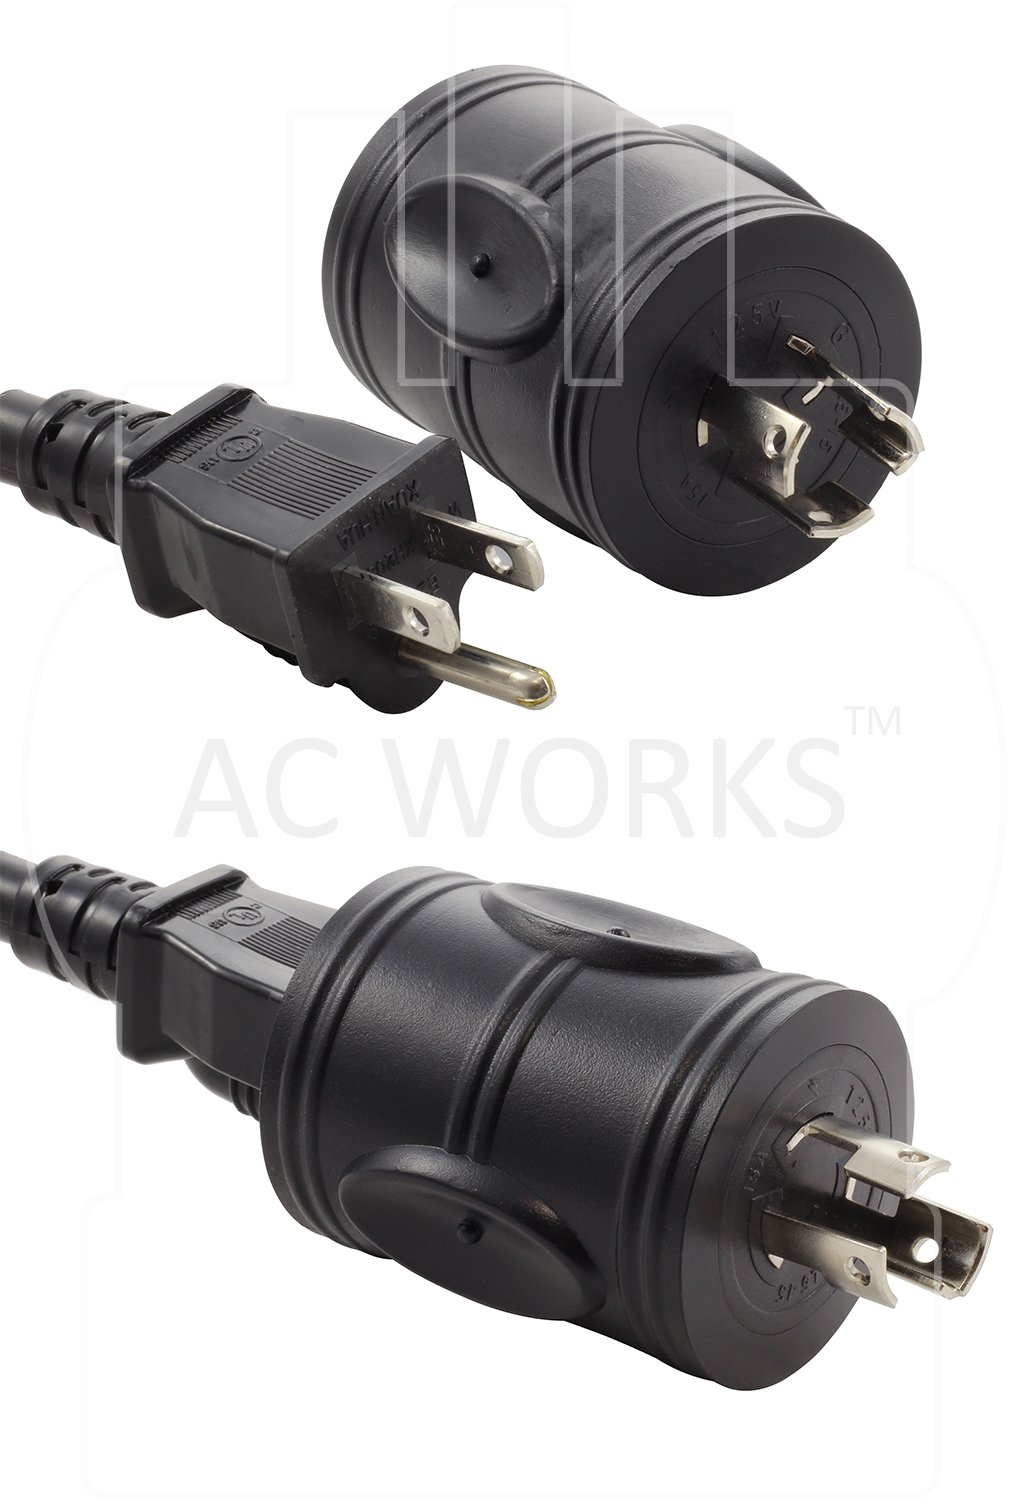 AC WORKS [ADL515520] Locking Adapter NEMA L5-15P 15Amp Locking Plug to Househole 15/20Amp Connector by AC WORKS (Image #3)